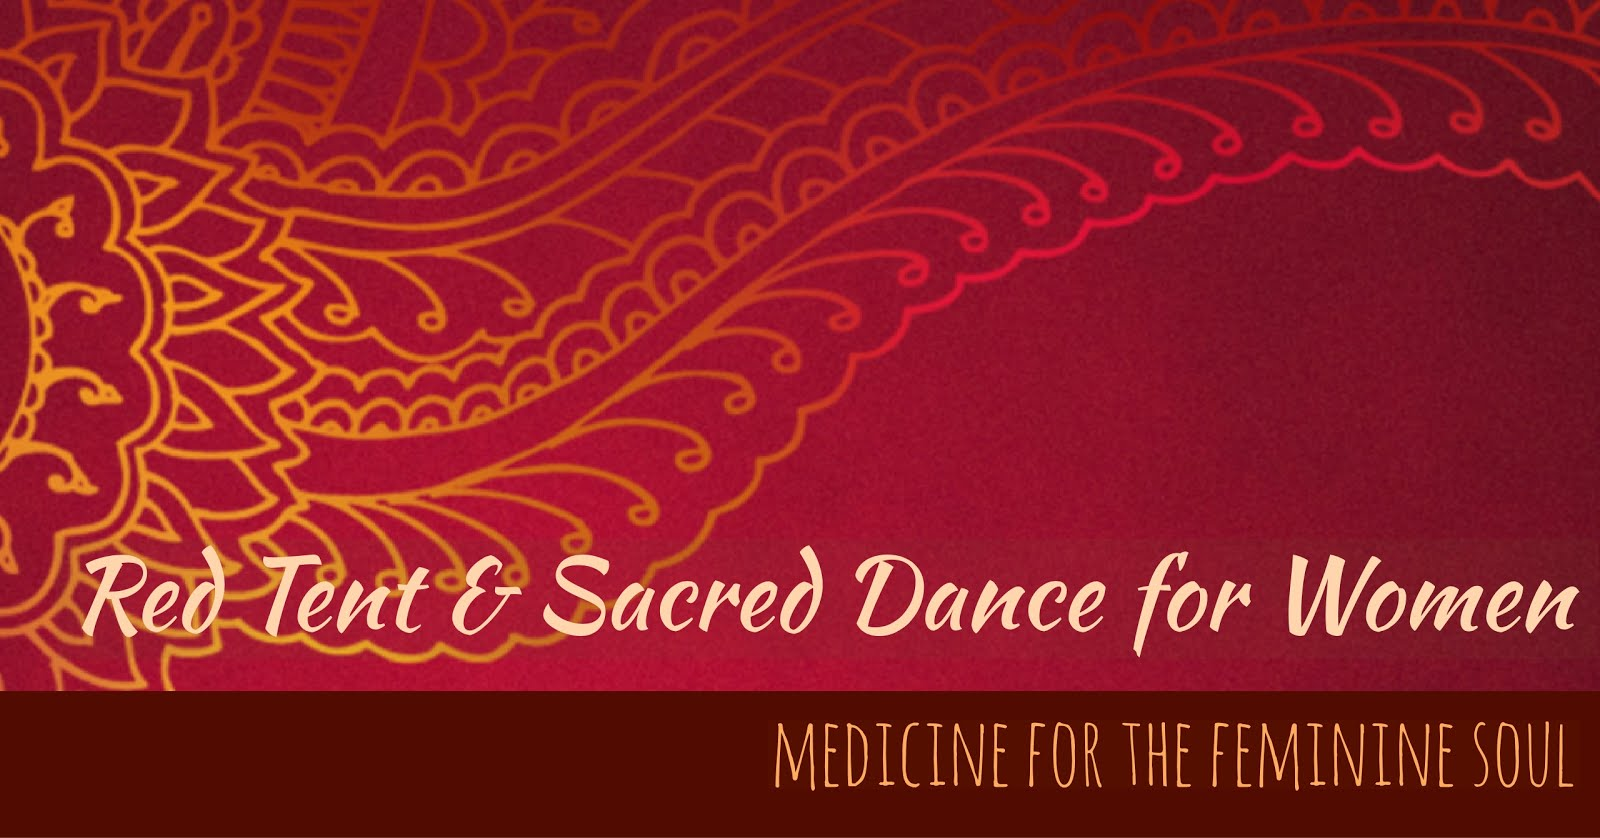 Red Tent & Women's Sacred Dance